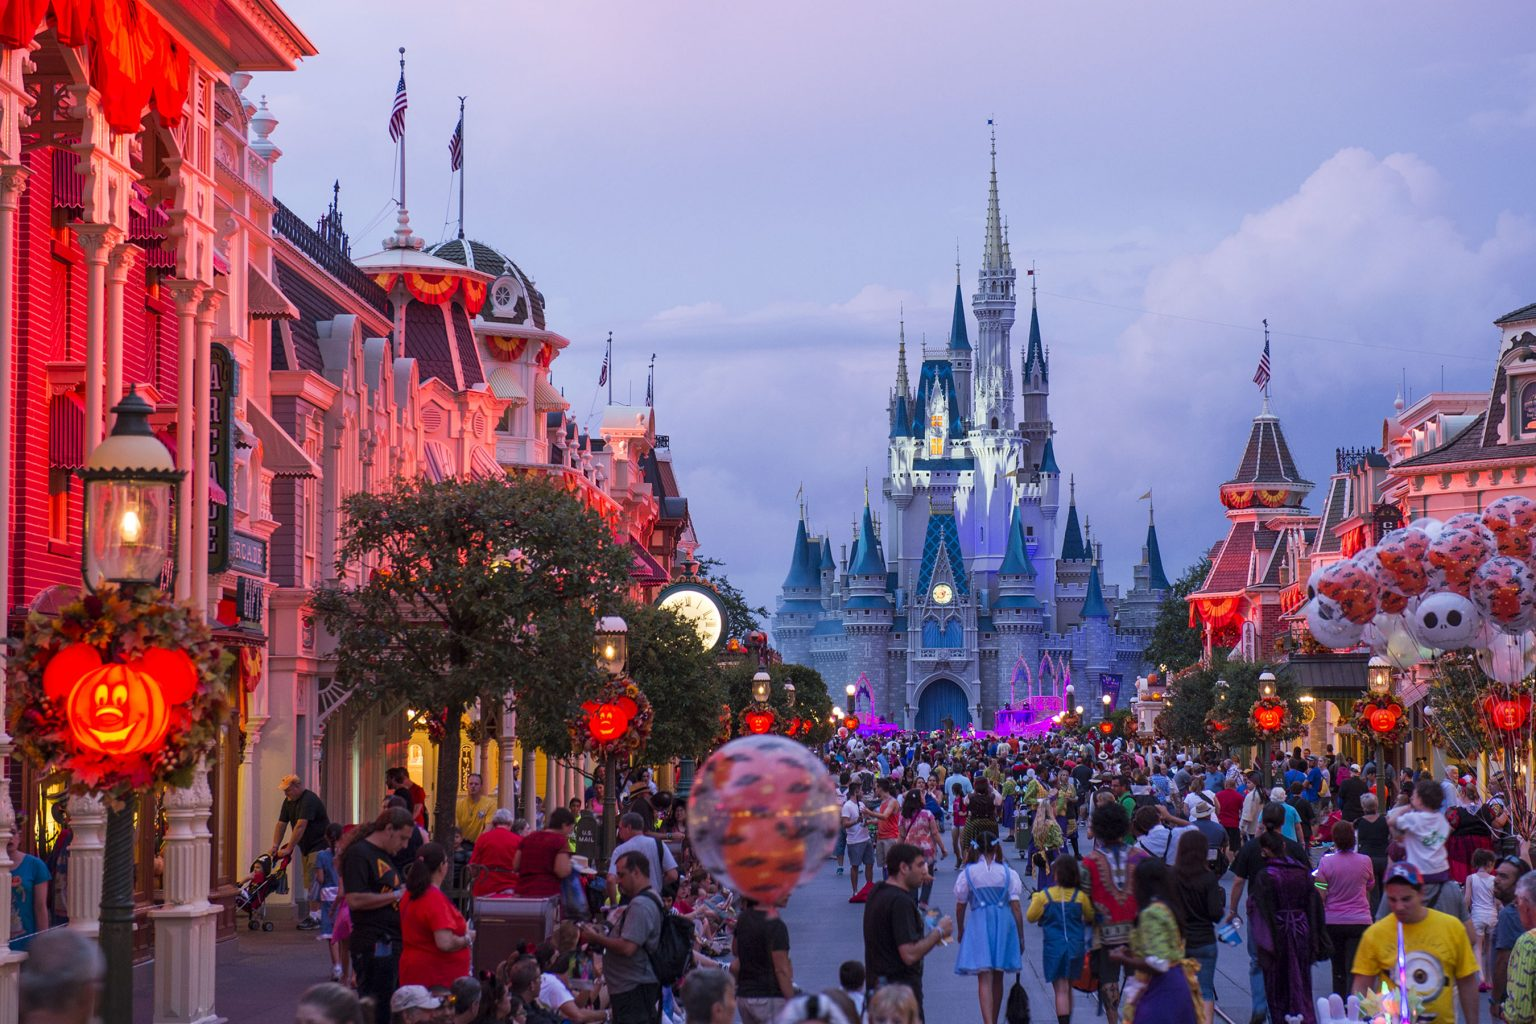 """Eerie lighting, fall dŽcor and Mickey Mouse-shaped Jack-O-Lanterns set the stage at Magic Kingdom for Mickey's Not-So-Scary Halloween Party. The family-friendly after-hours event offers trick-or-treating, meet and greets with favorite characters in costume, plus the must-see """"Mickey's Boo-to-You Halloween Parade"""" and """"Happy HalloWishes"""" fireworks display. Mickey's Not-So-Scary Halloween Party is a special ticket event and takes place on select nights each fall at Walt Disney World Resort in Lake Buena Vista, Fla. (David Roark, photographer)"""